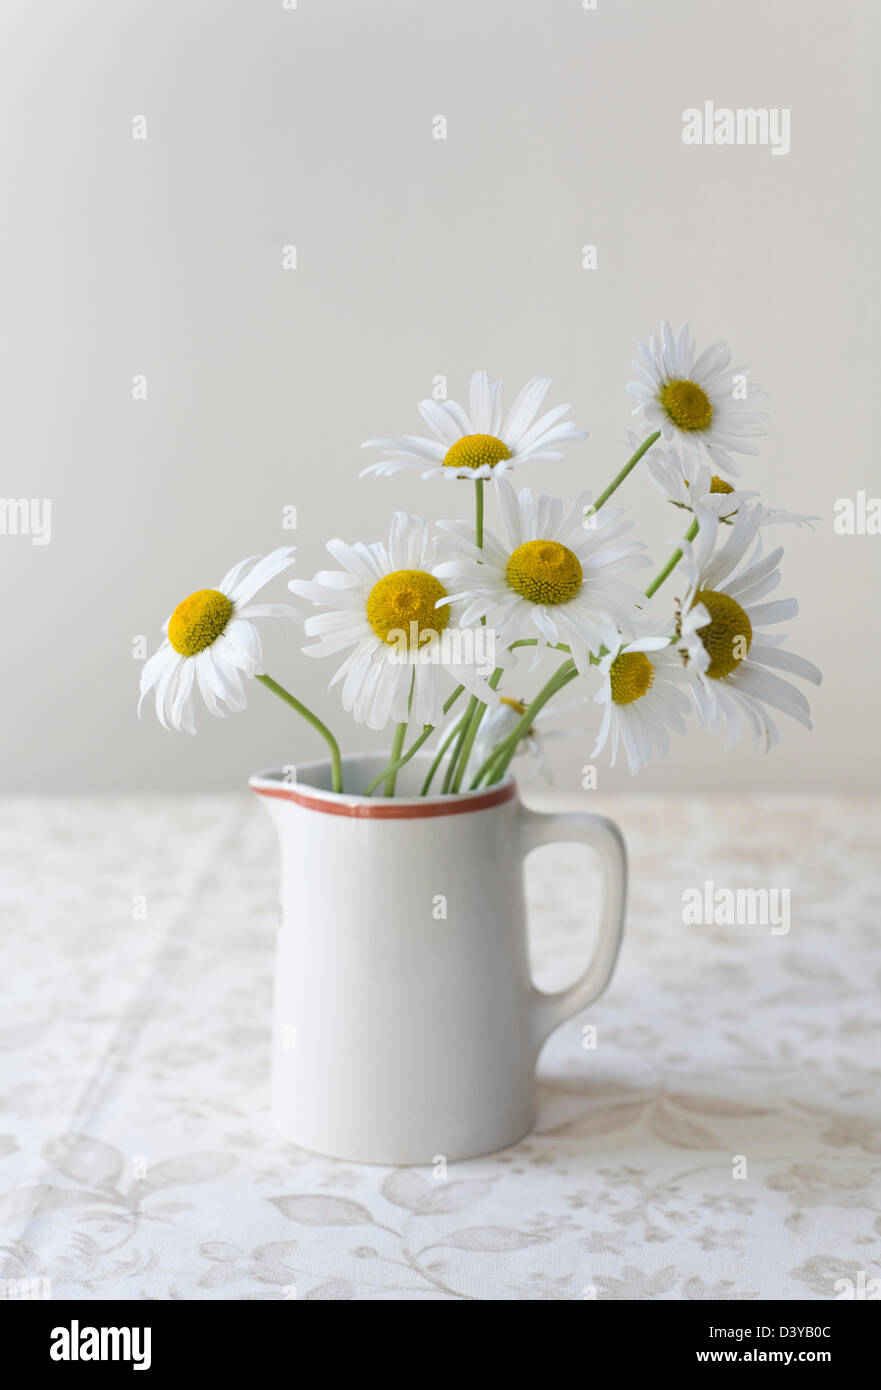 White daisies with yellow centers in a small jug on a lightly patterned table cloth - Stock Image